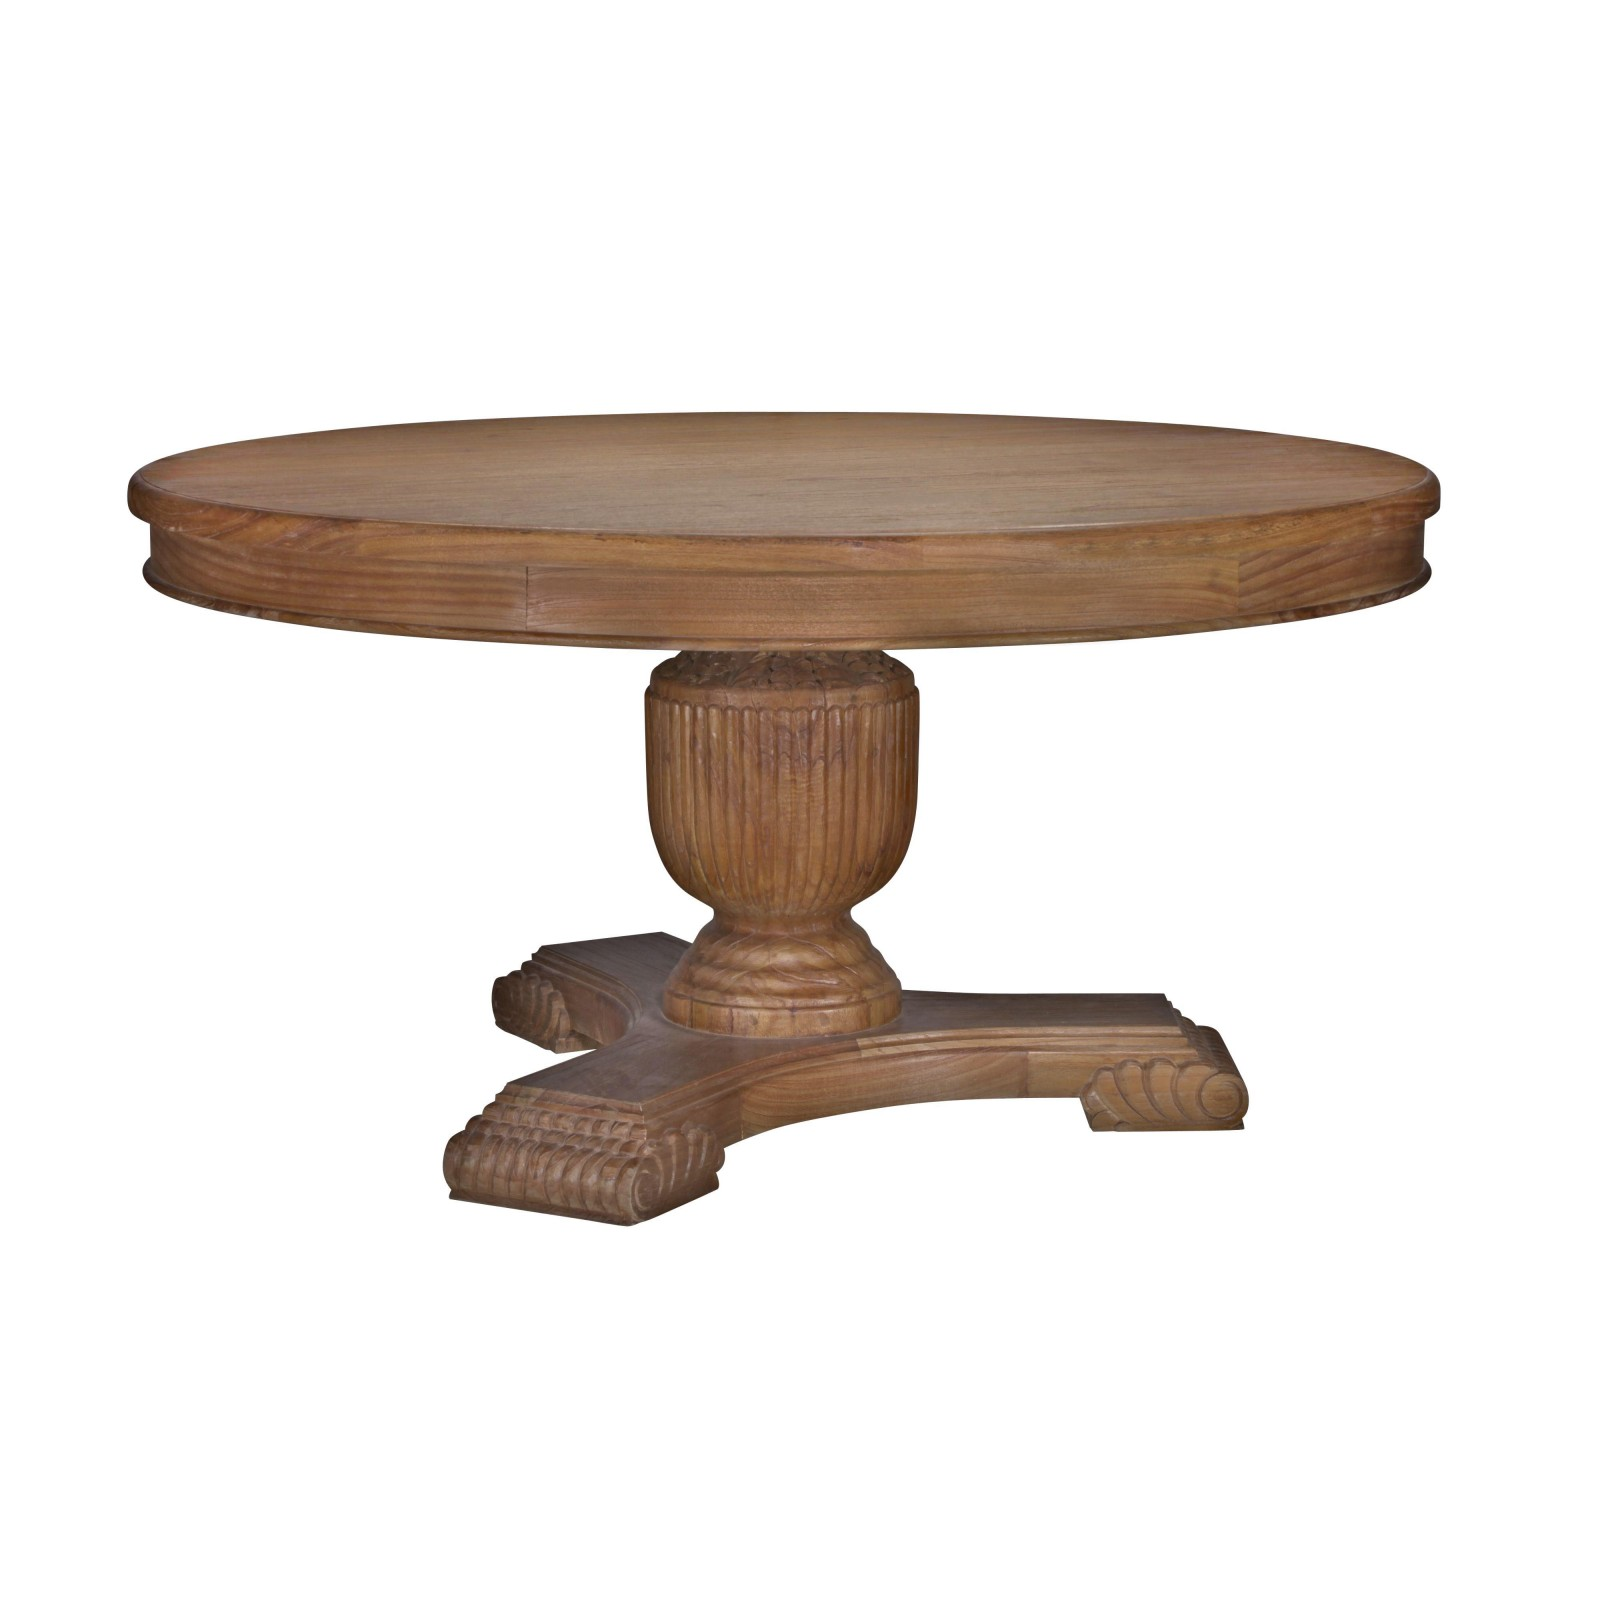 Best Round Dining Table Avignon 150cm Rustic High Quality